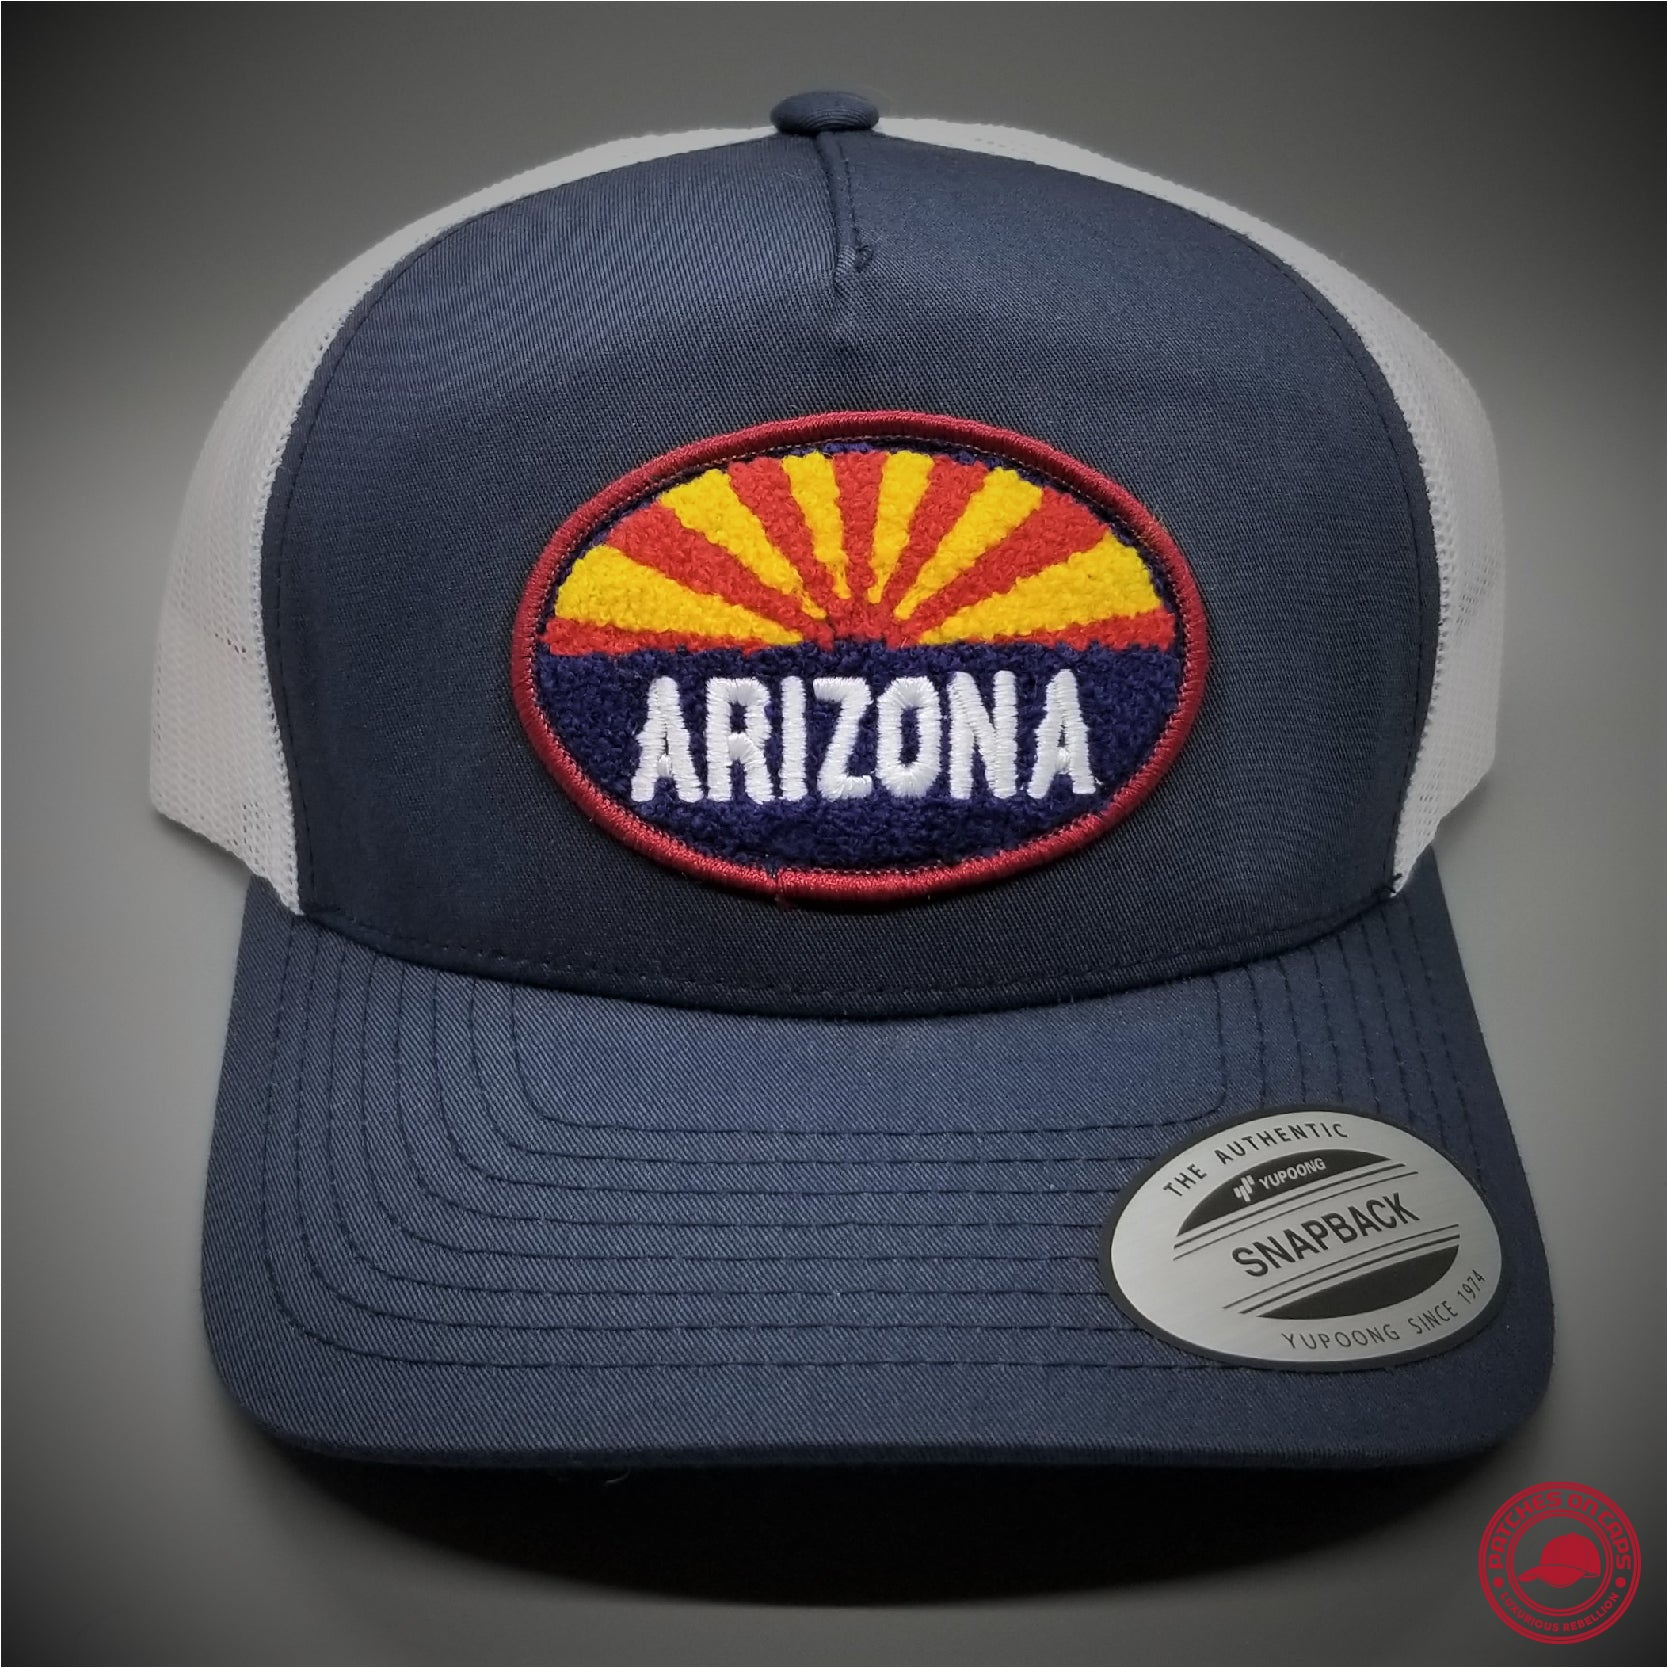 bbedee3e Arizona Chenille Patch on - Yupoong 6506 Retro Trucker Snapback Cap -  Patches On Caps